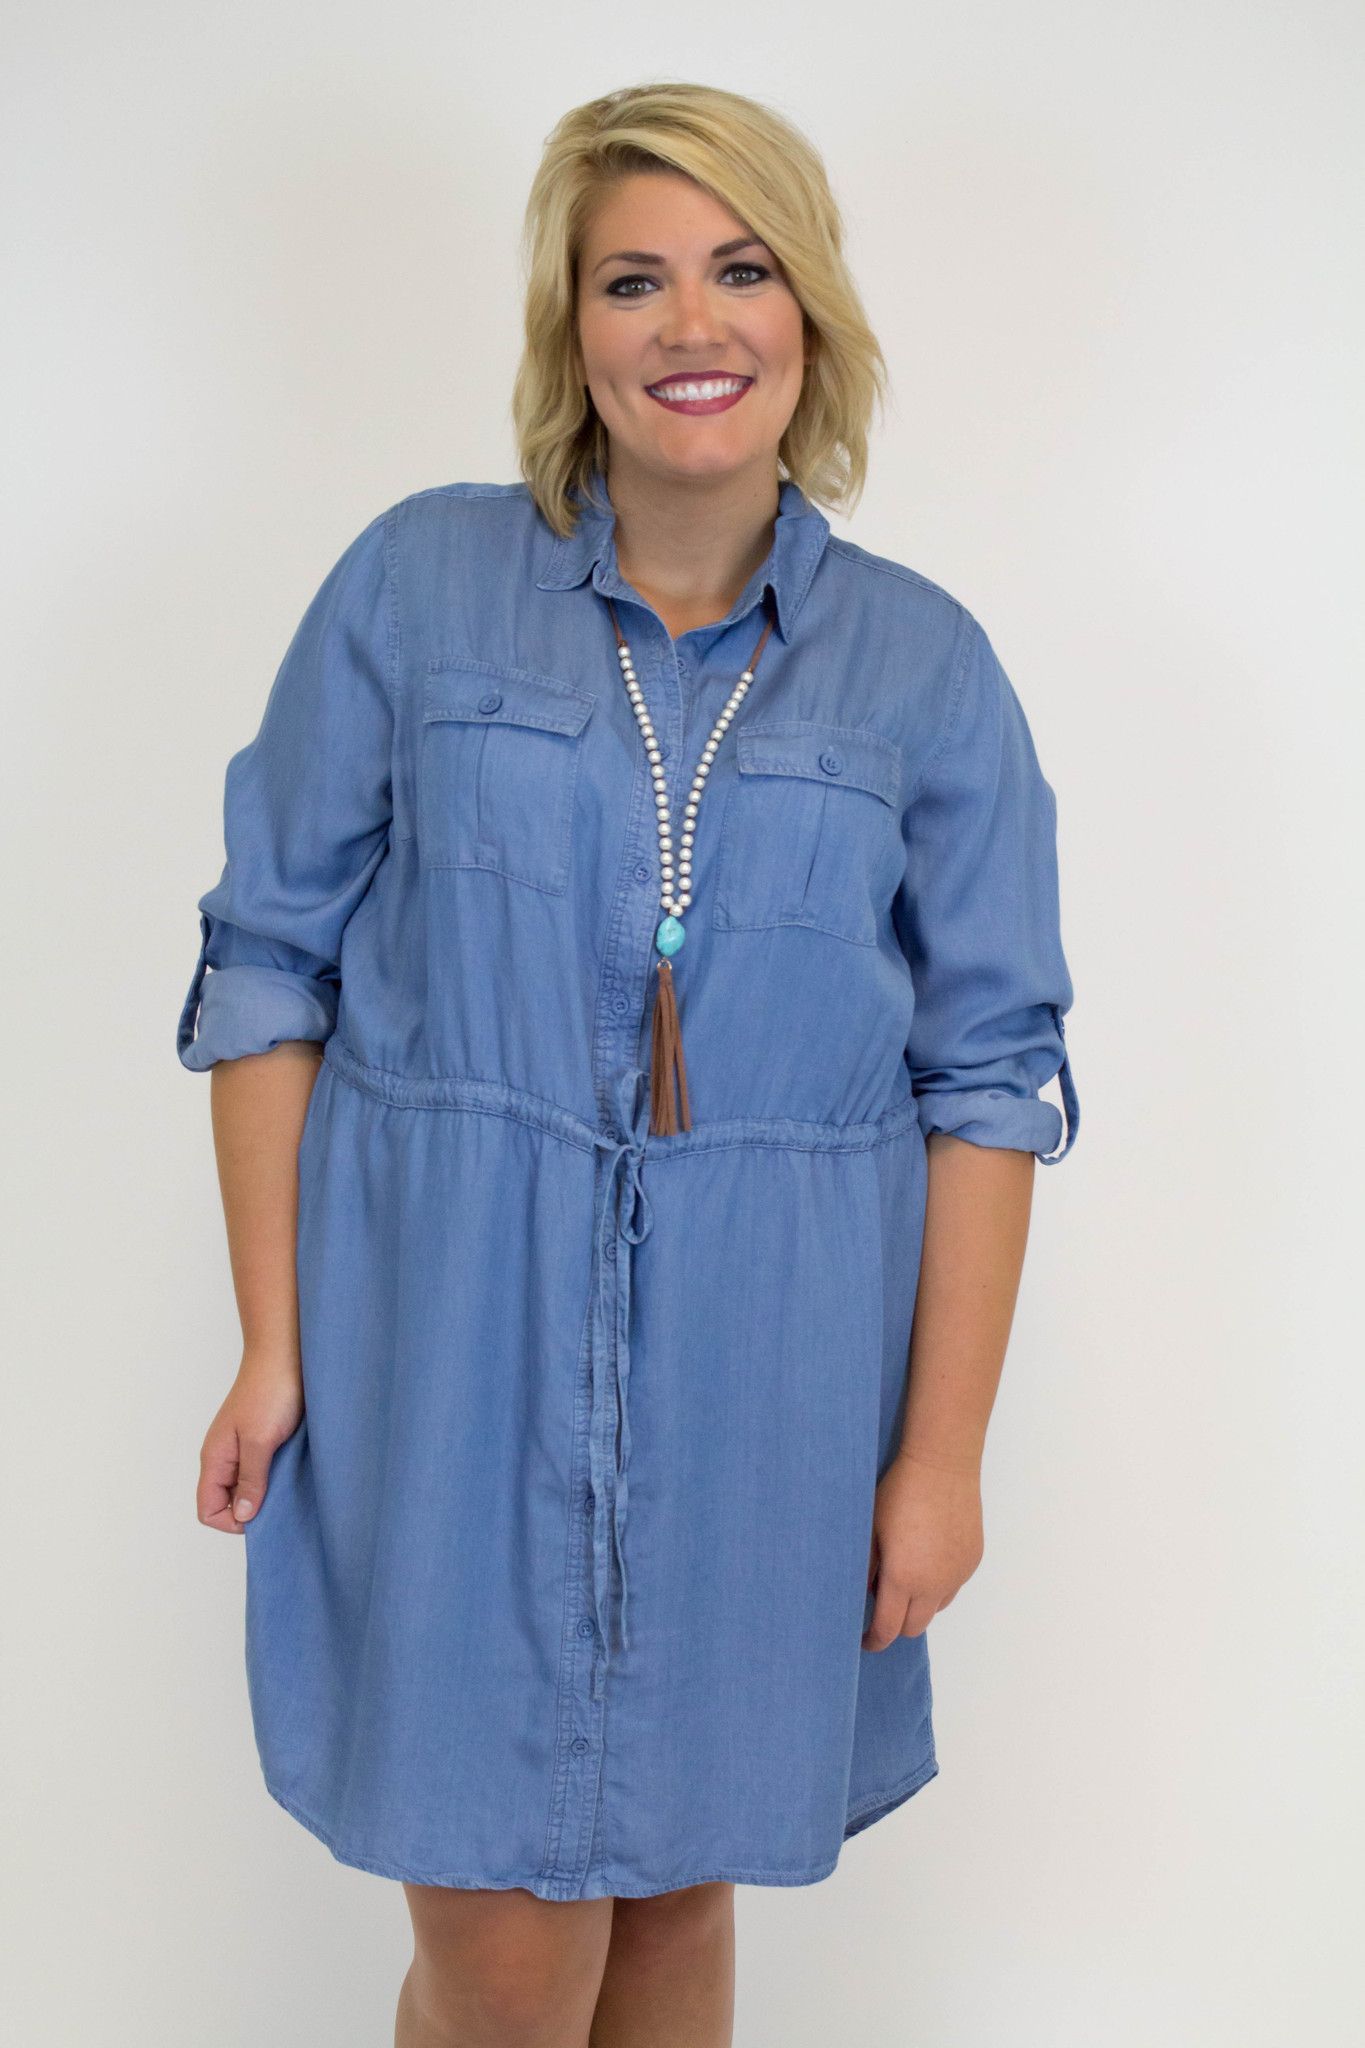 Denim Dress Plus Size Sleeved Dress Models And Clothes